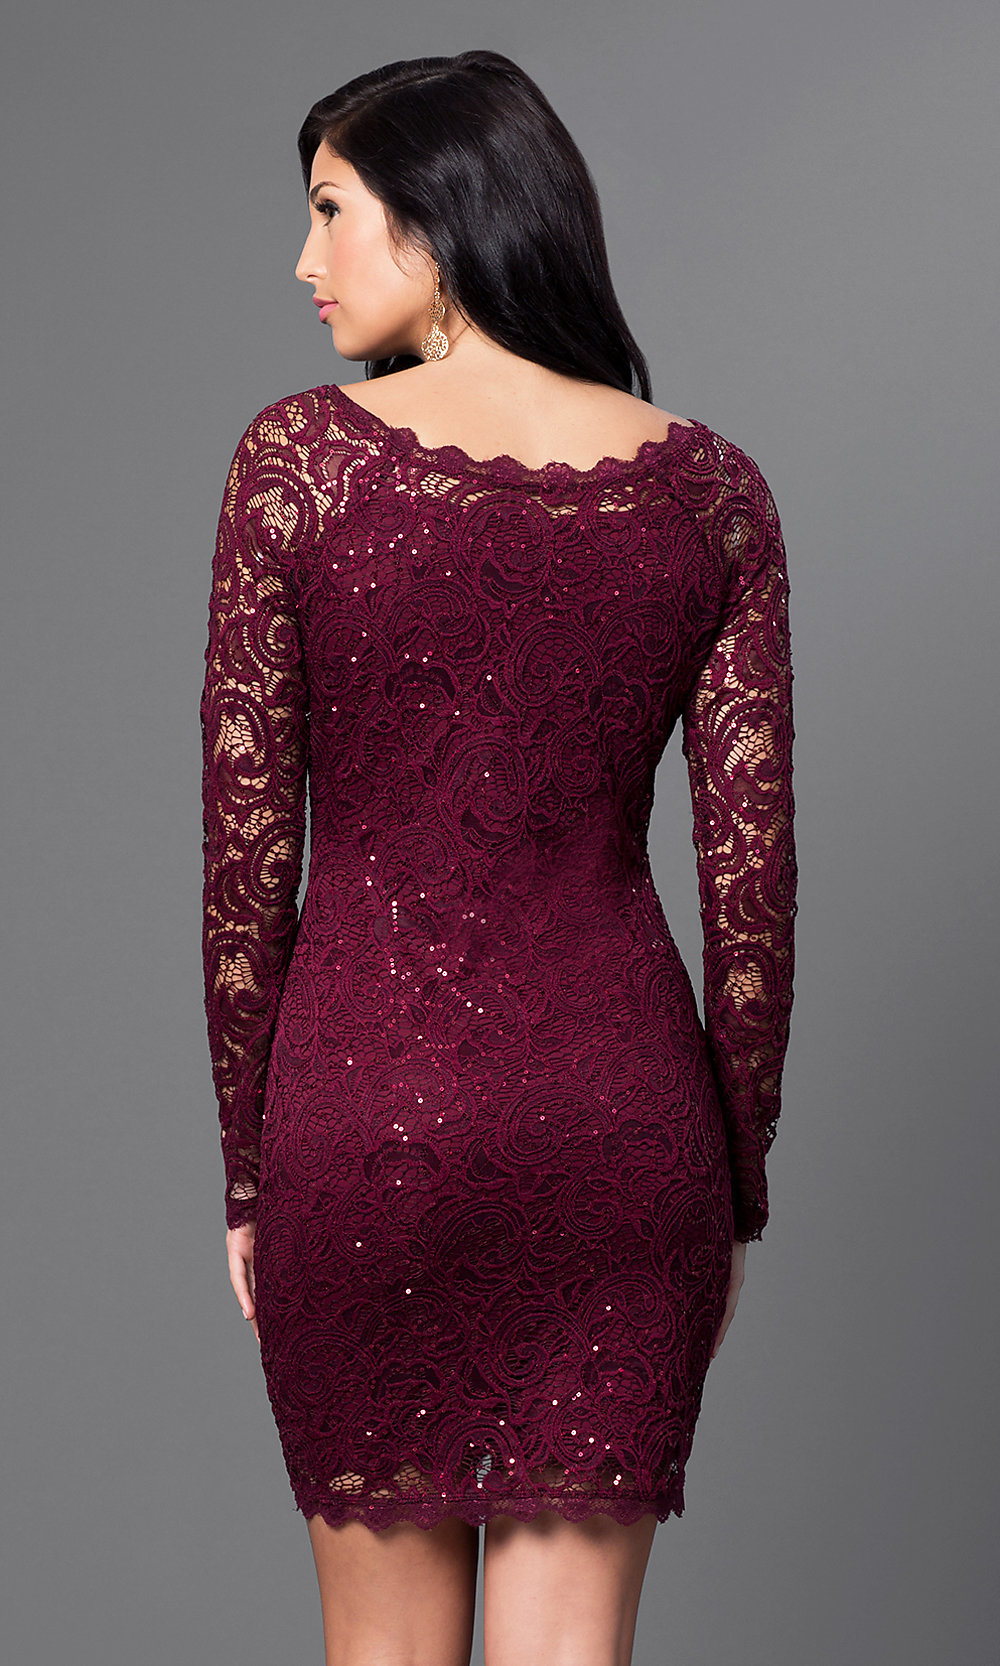 sleeved malbec red short lace party dress promgirl